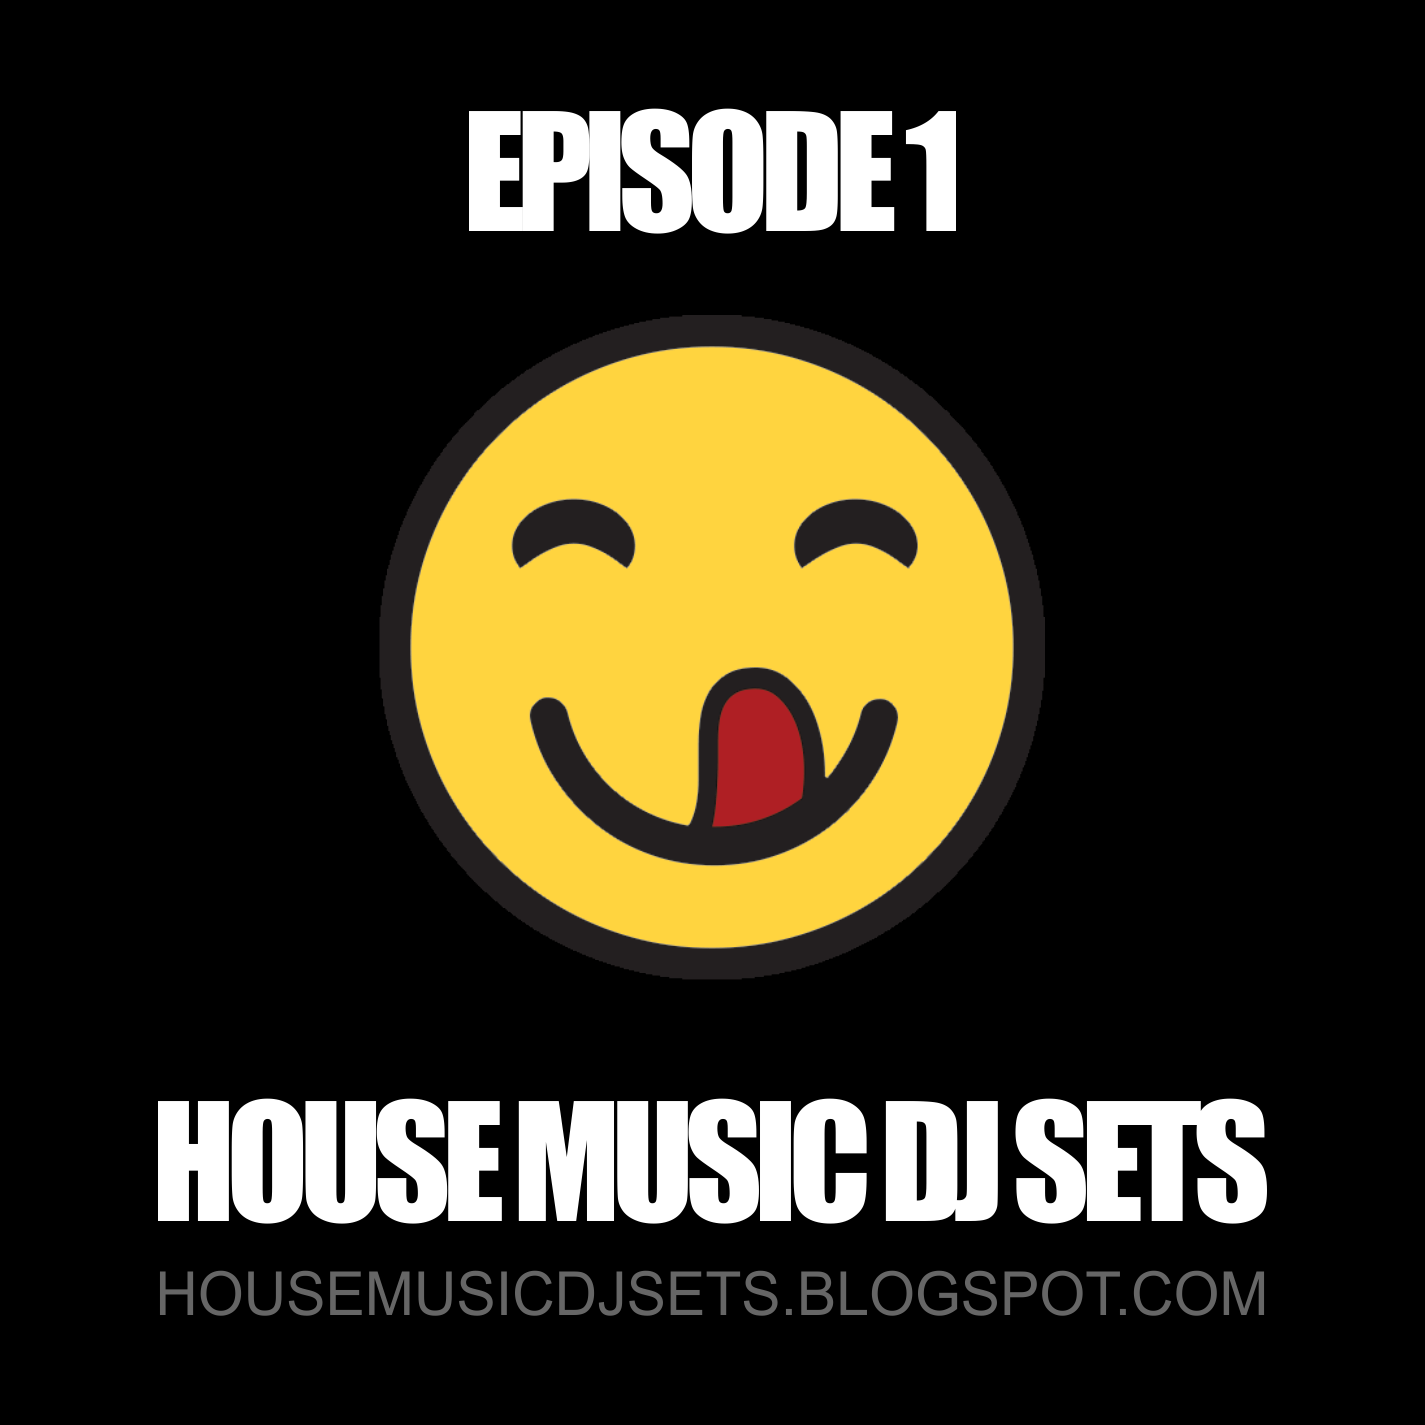 House music dj sets episode 1 house music dj sets for House music podcast